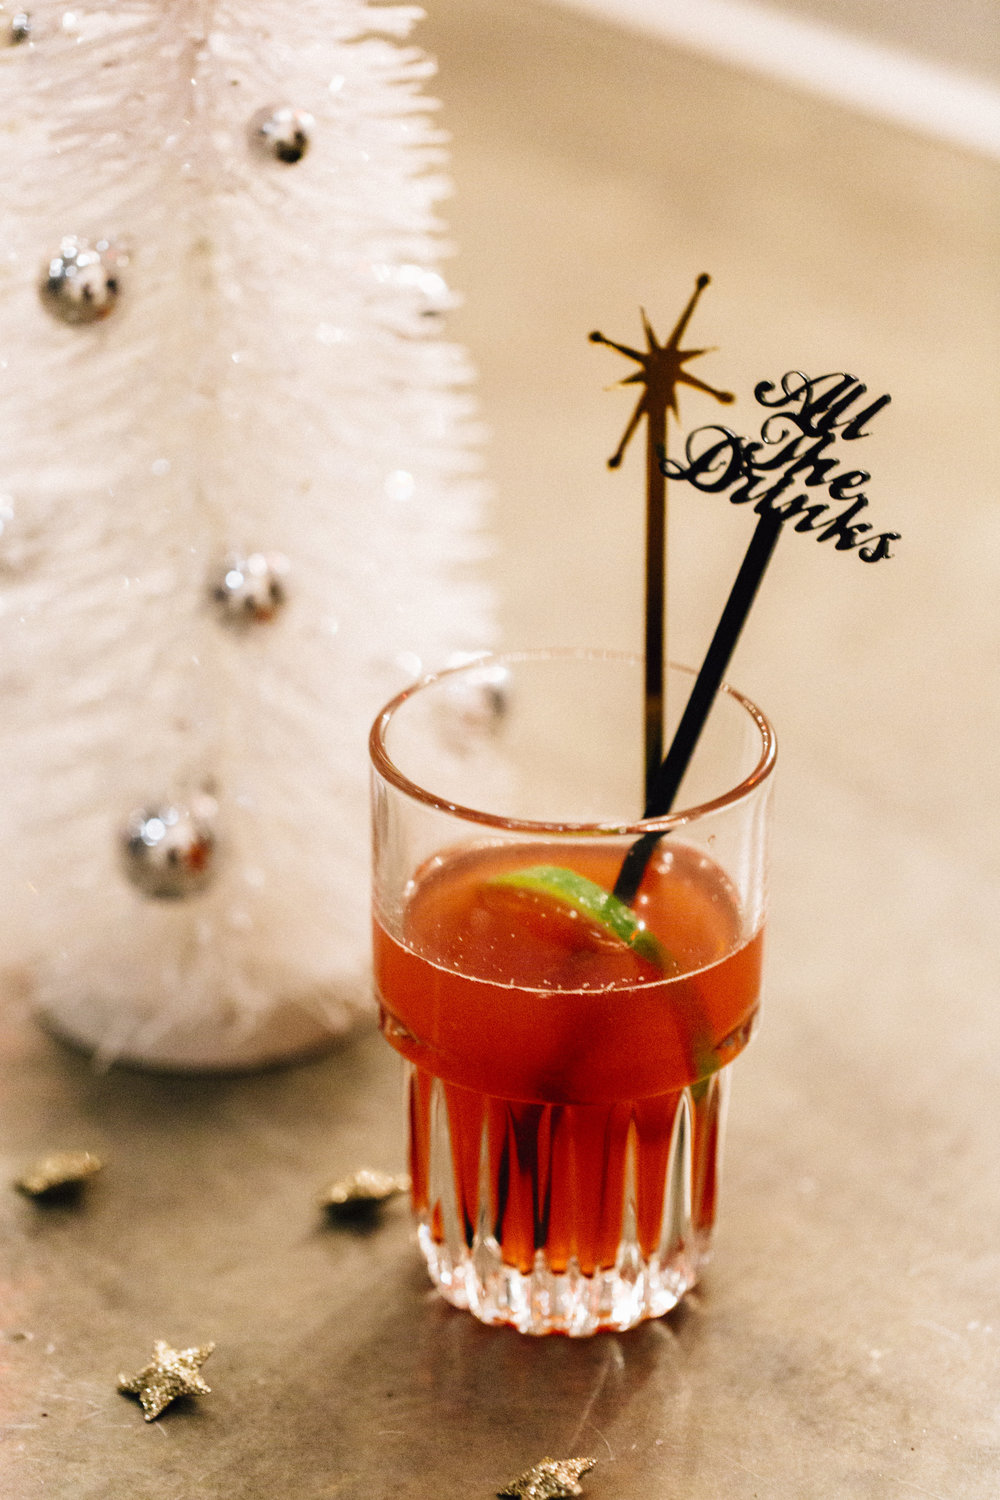 Holiday Mixology Class- Styling by Ashley Spence